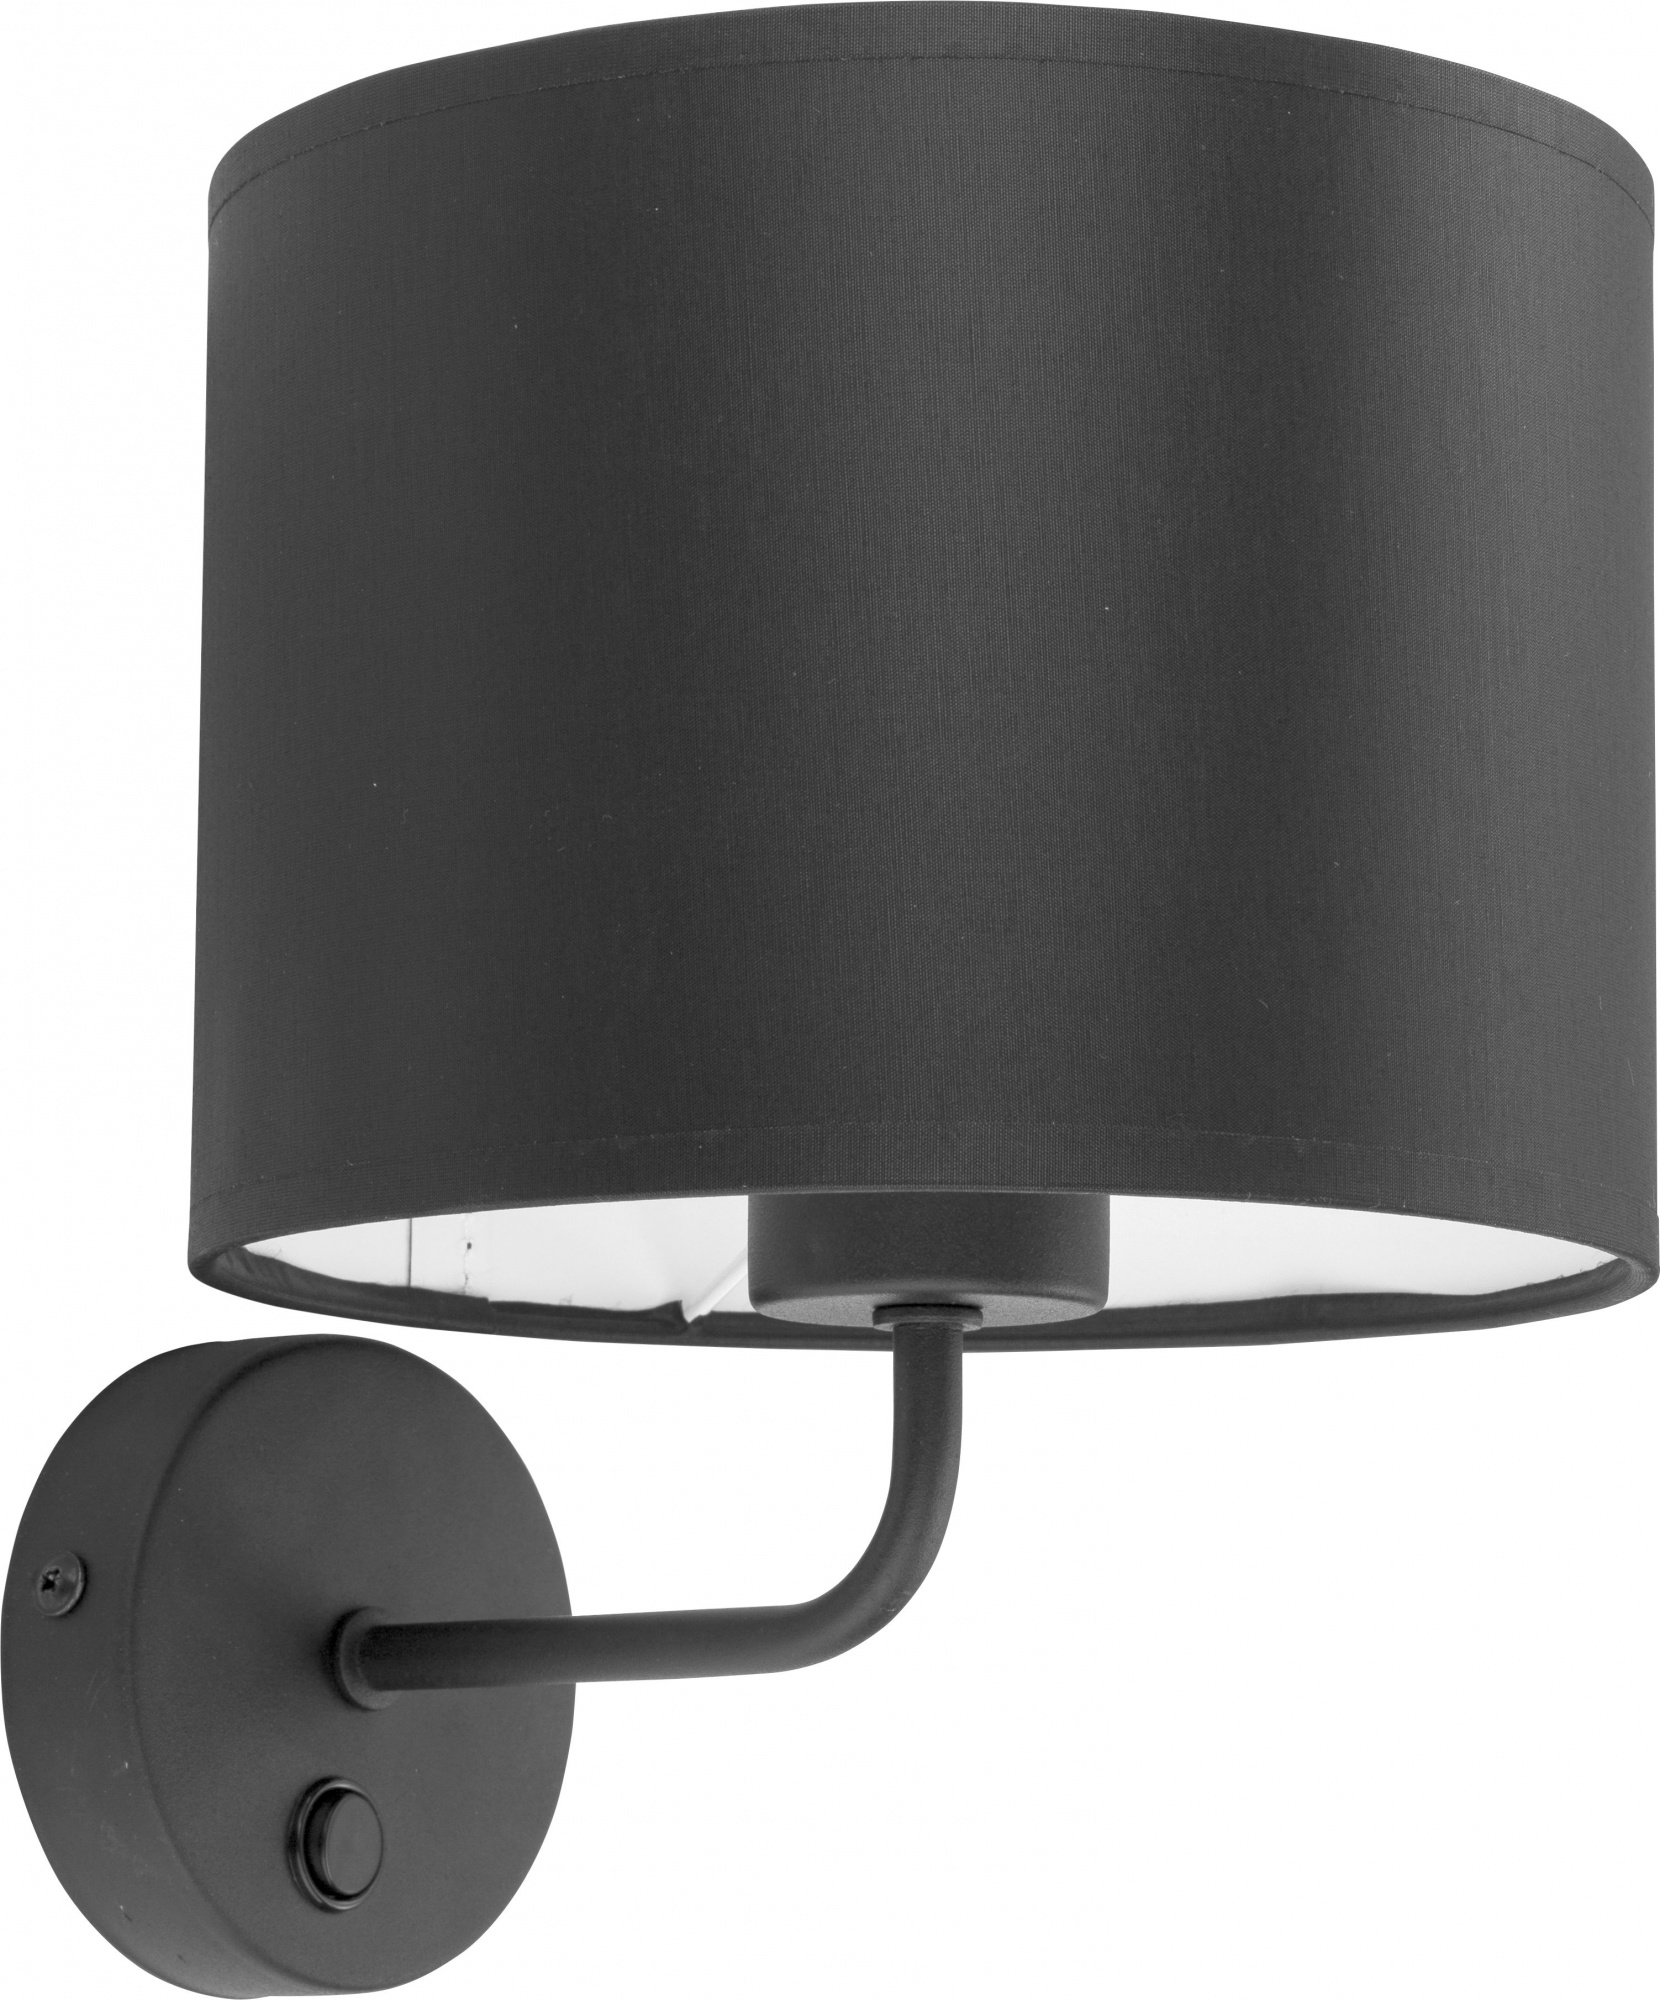 TK Lighting TK-4280 Mia falikar